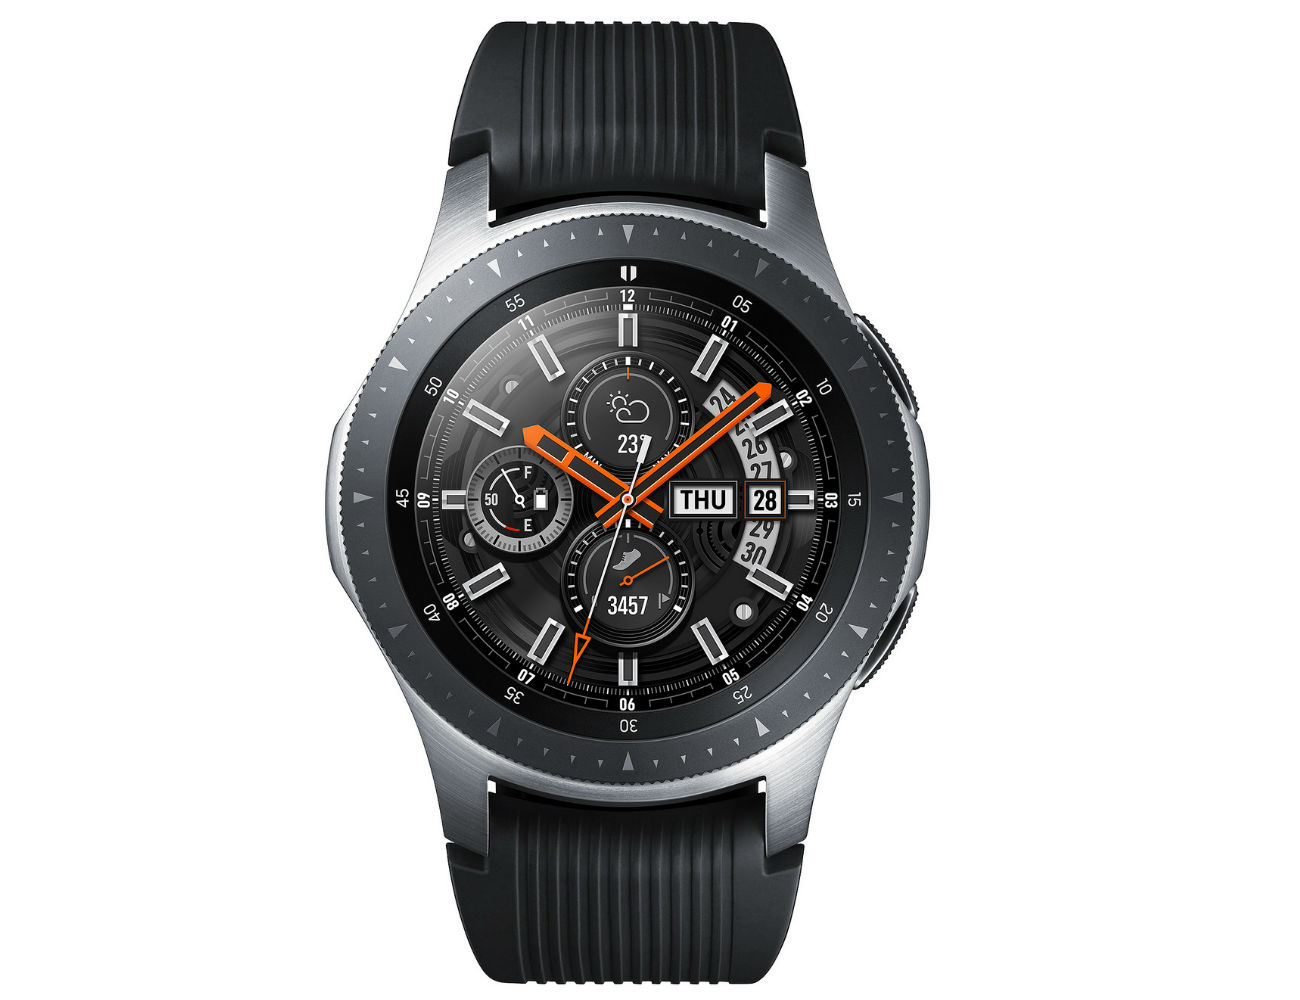 Samsung Galaxy Watch Bixby Smartwatch